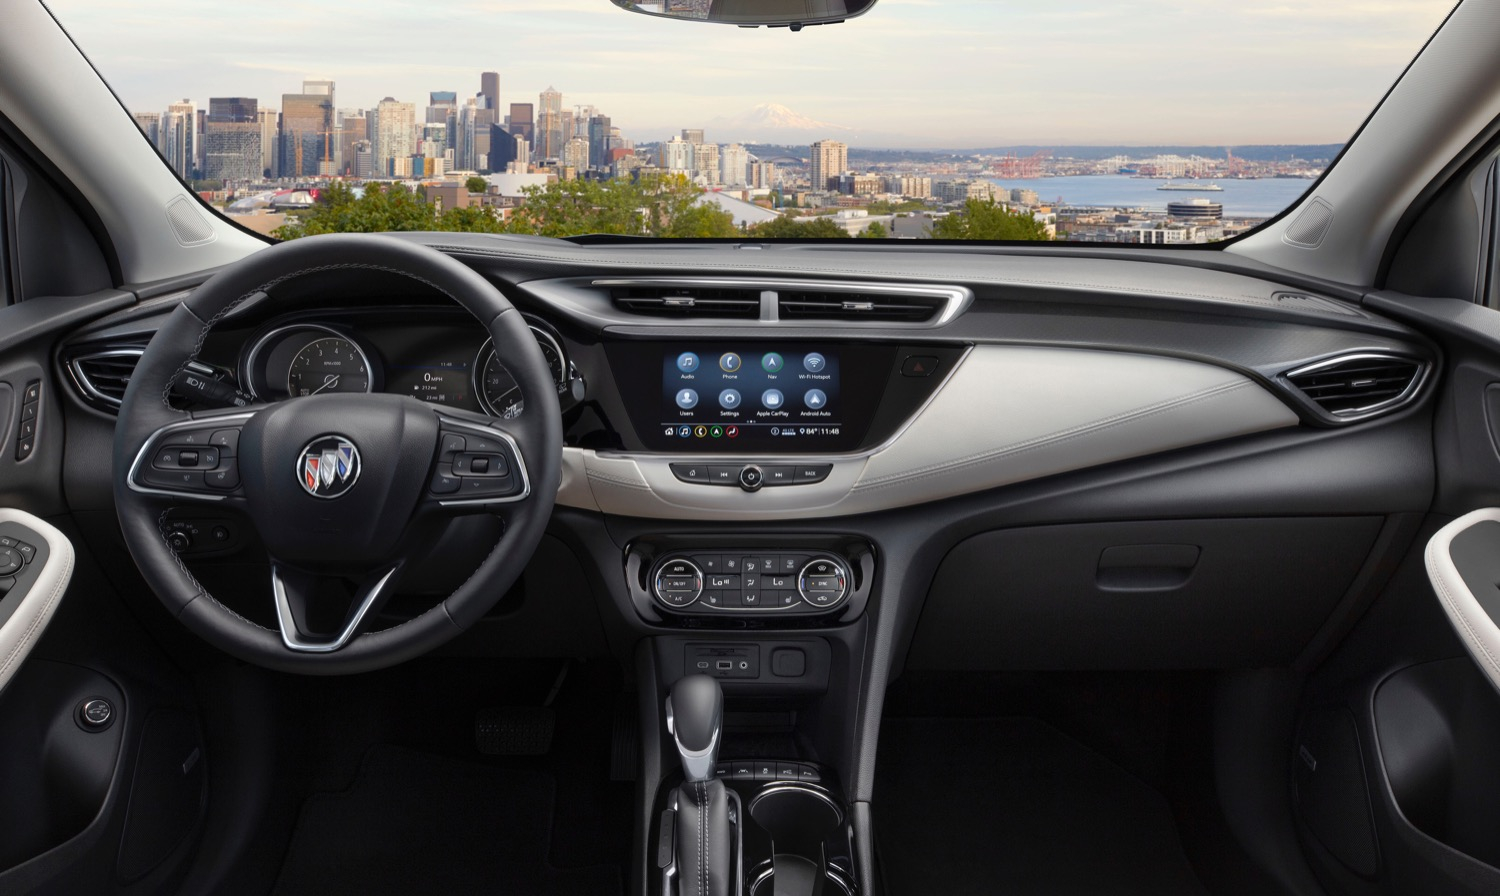 2021 Buick Encore Gx Interior Colors | Gm Authority 2021 Buick Encore Release Date, Specifications, Exterior Colors